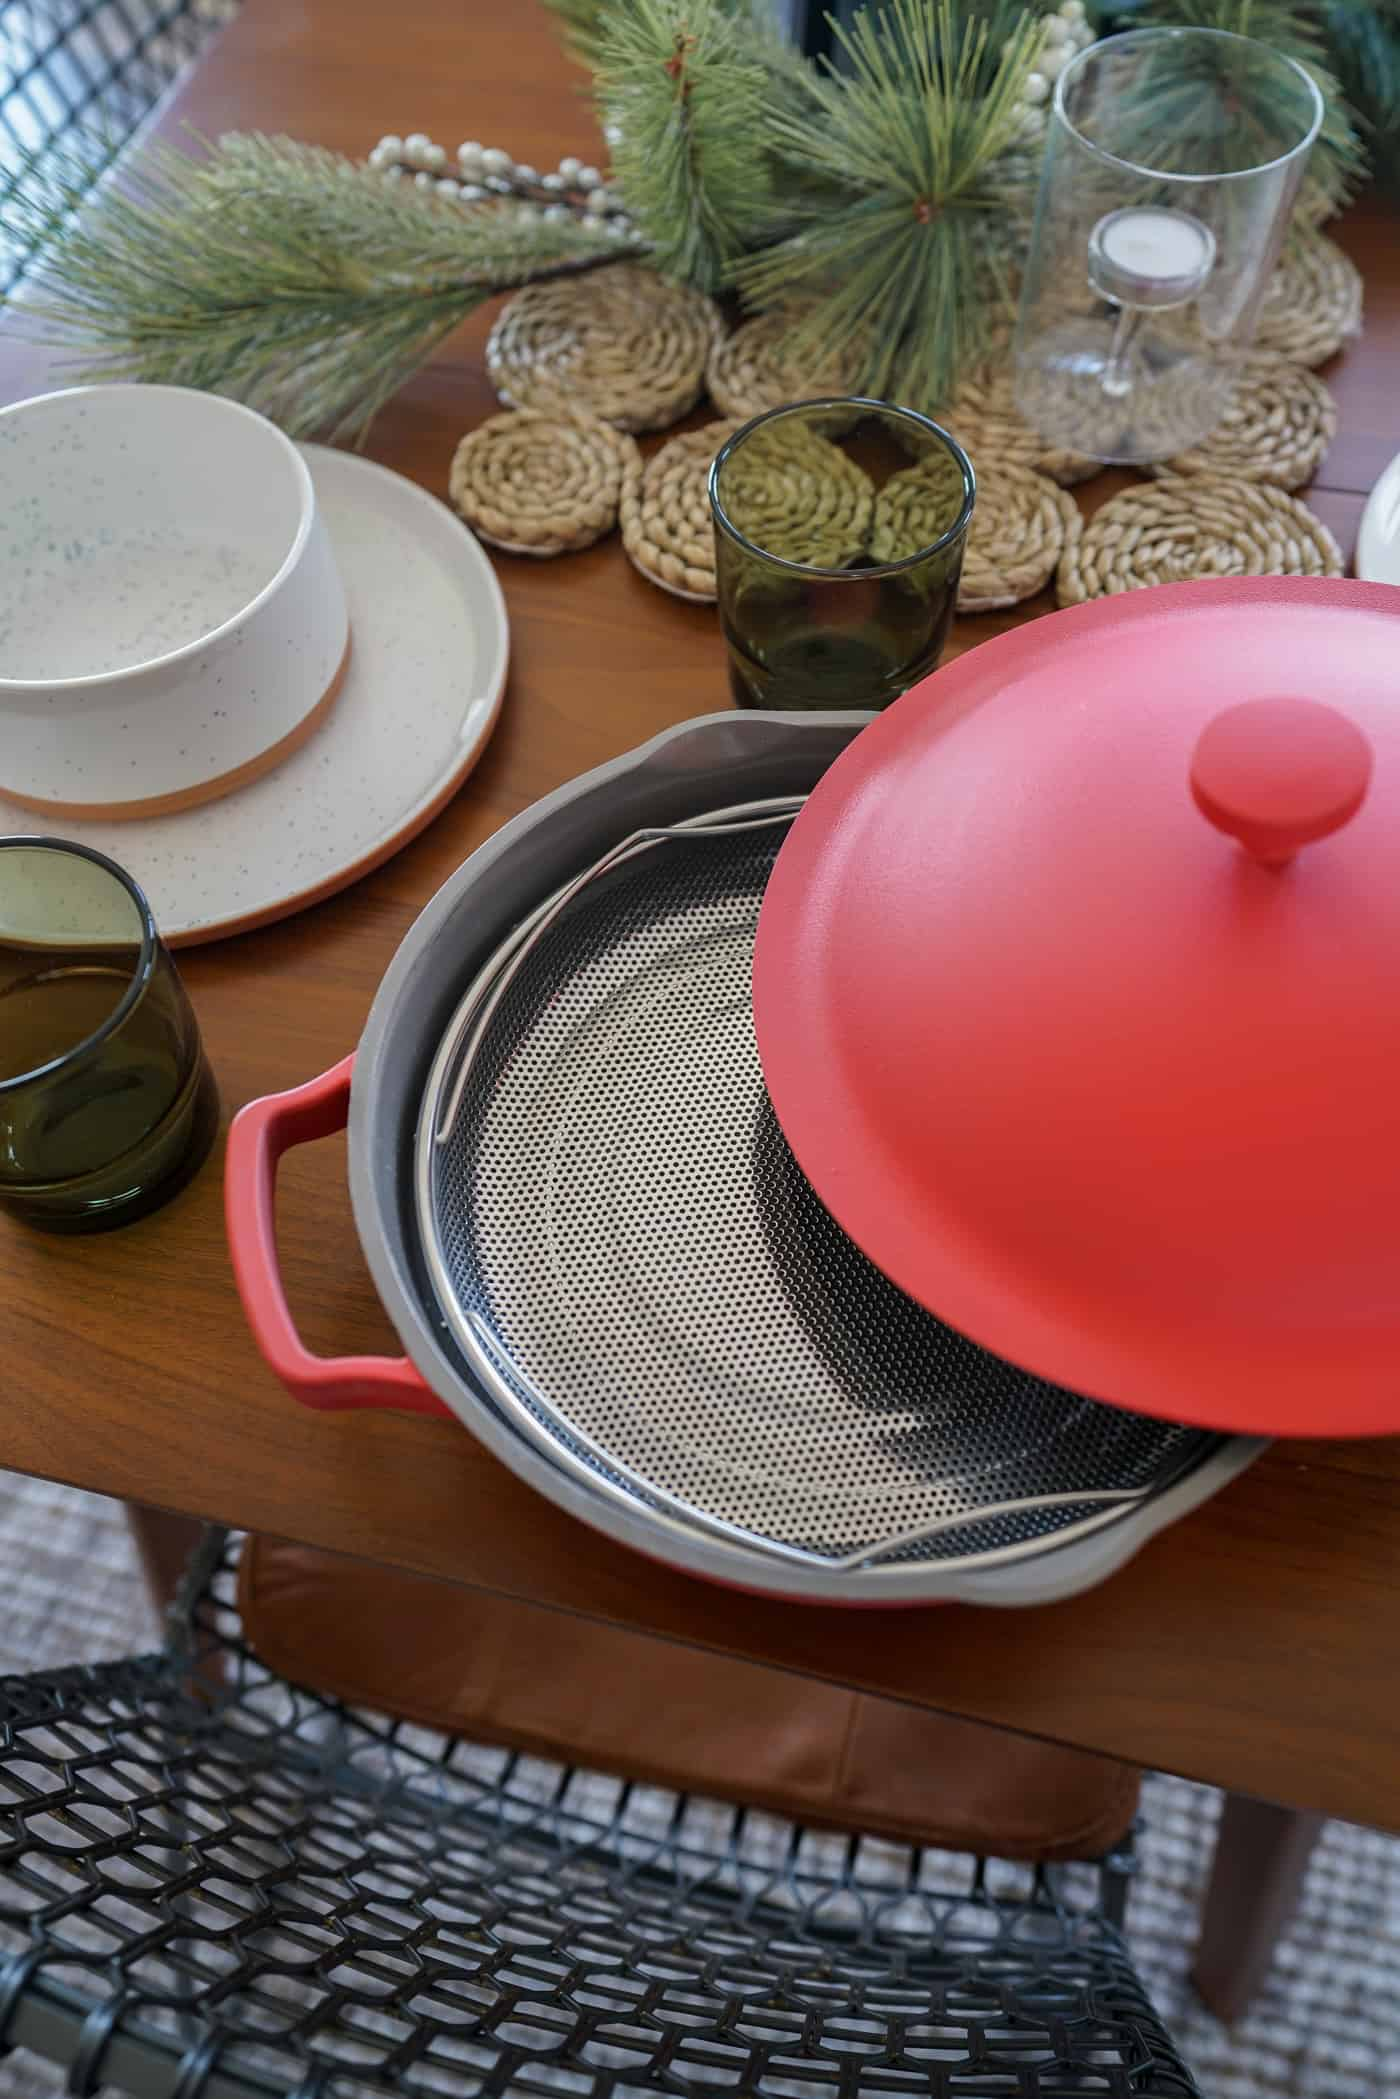 A brown dining room table with the Always Pan in color heat along with Our Place dishes